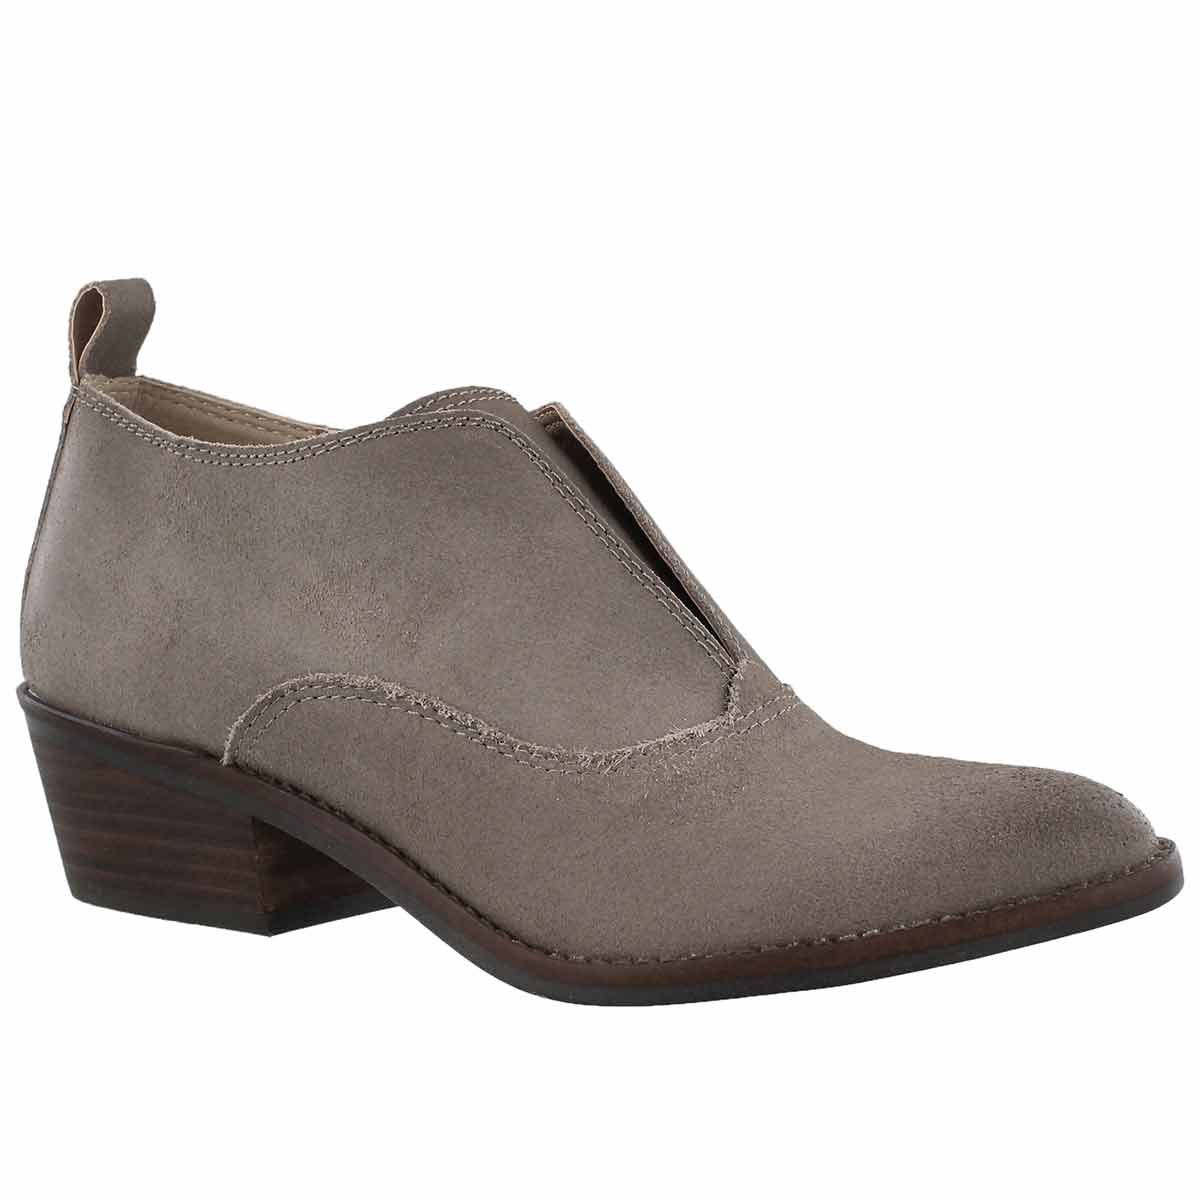 Lds Fimberly brindle low casual boot